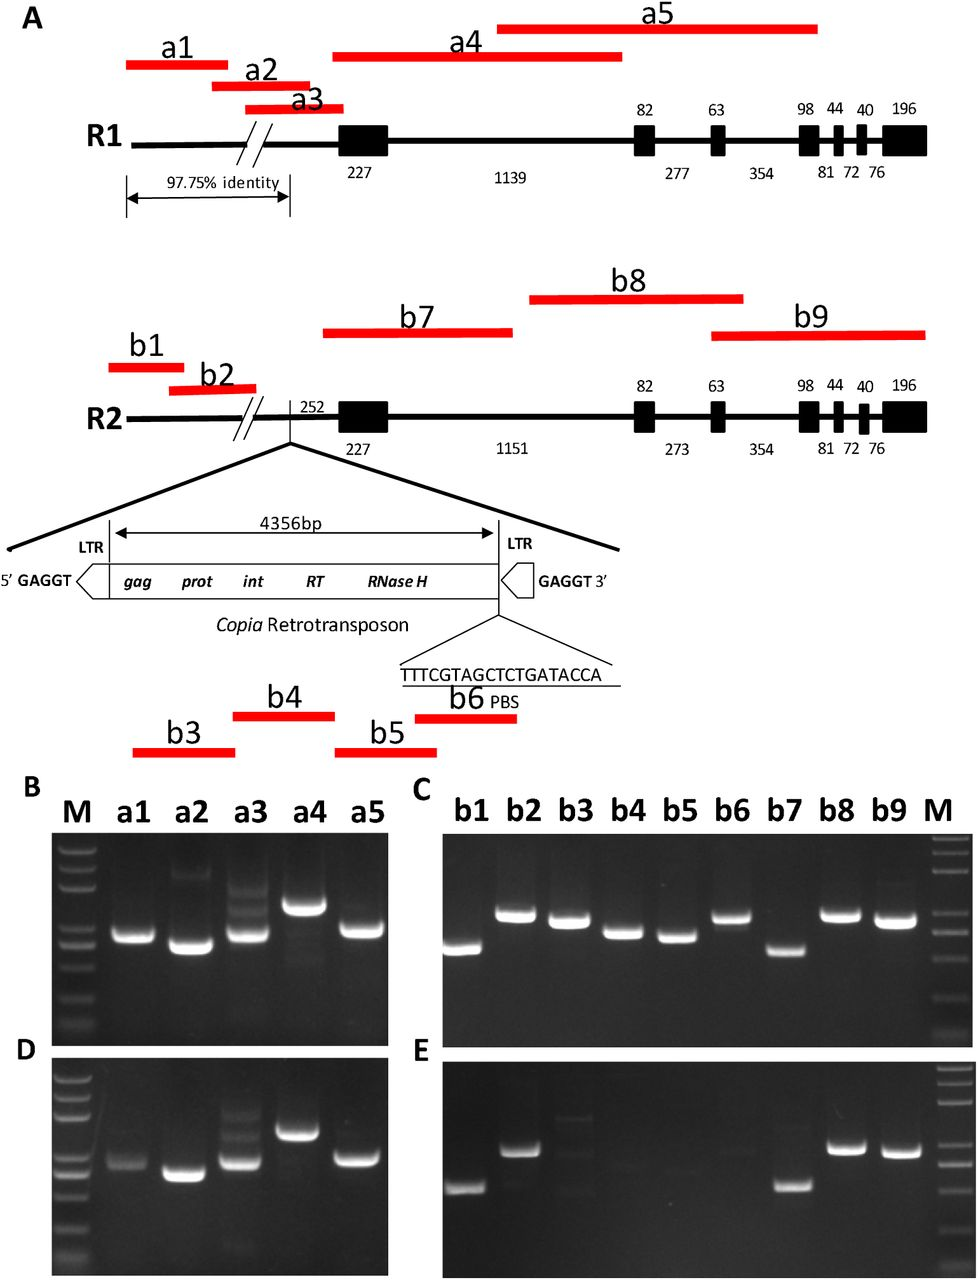 Cross validation of DNA methylation status of BnSHP1.A9 in R1/R2 silique genomic DNA. A, amplified fragments illustrated in BnSHP1.A9 DNA from R1/R2 B, D : chop-PCR with BnSHP1.A9 gDNA template and McrBC digested gDNA of 20 DAF silique from R1 without McrBC digestion; a1: −2412/−1542, a2: −1616/−882, a3: −902/−30, a4: −49/+1413, a5: +1034/+2007 C, E : chop-PCR with BnSHP1.A9 gDNA template and McrBC digested gDNA of 20 DAF silique from R2. b1: −7412/−6823, b2: −6753/−5765, b3: −3191/−2285, b4: −2538/−1788, b5: −1707/−1027, b6: −1035/−102, b7: −49/+436, b8: +1035/+2012, b9: +1883/+2793 M: Trans 2k plus.